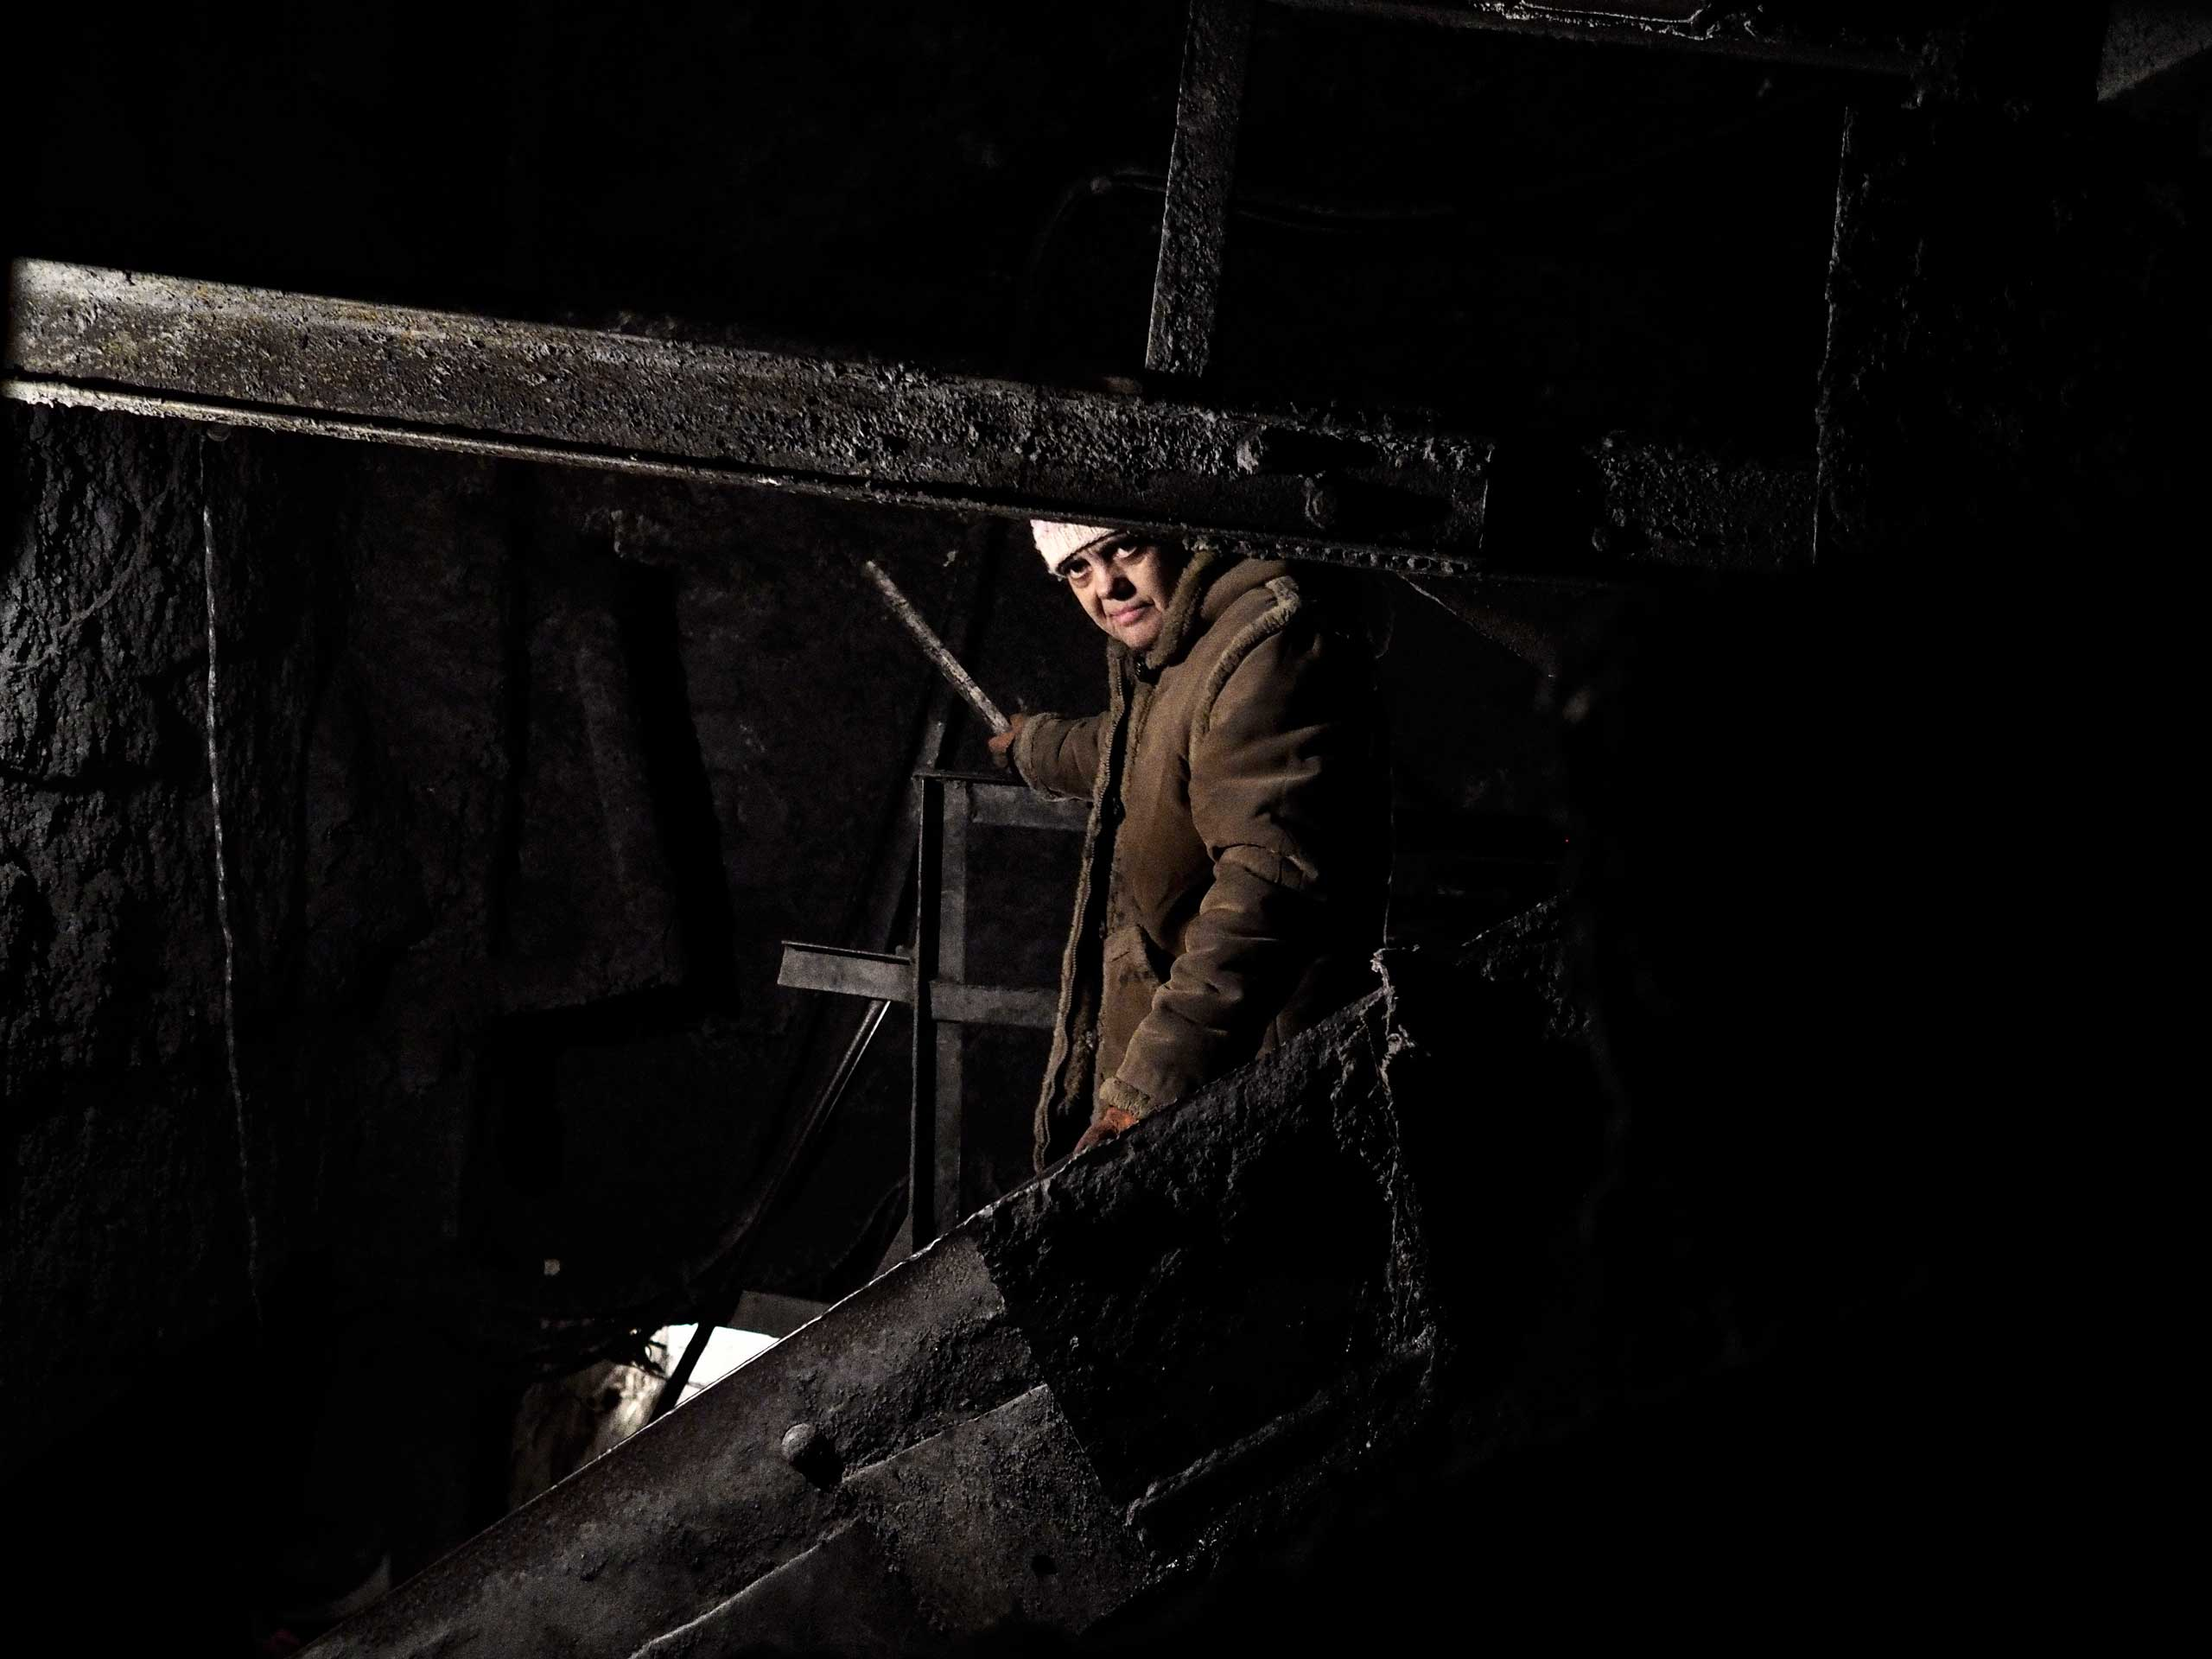 A woman working on the coal conveyer belt in the storage area of the mine complex. Petrovskyi district, Donetsk, Ukraine. Nov. 24, 2014.